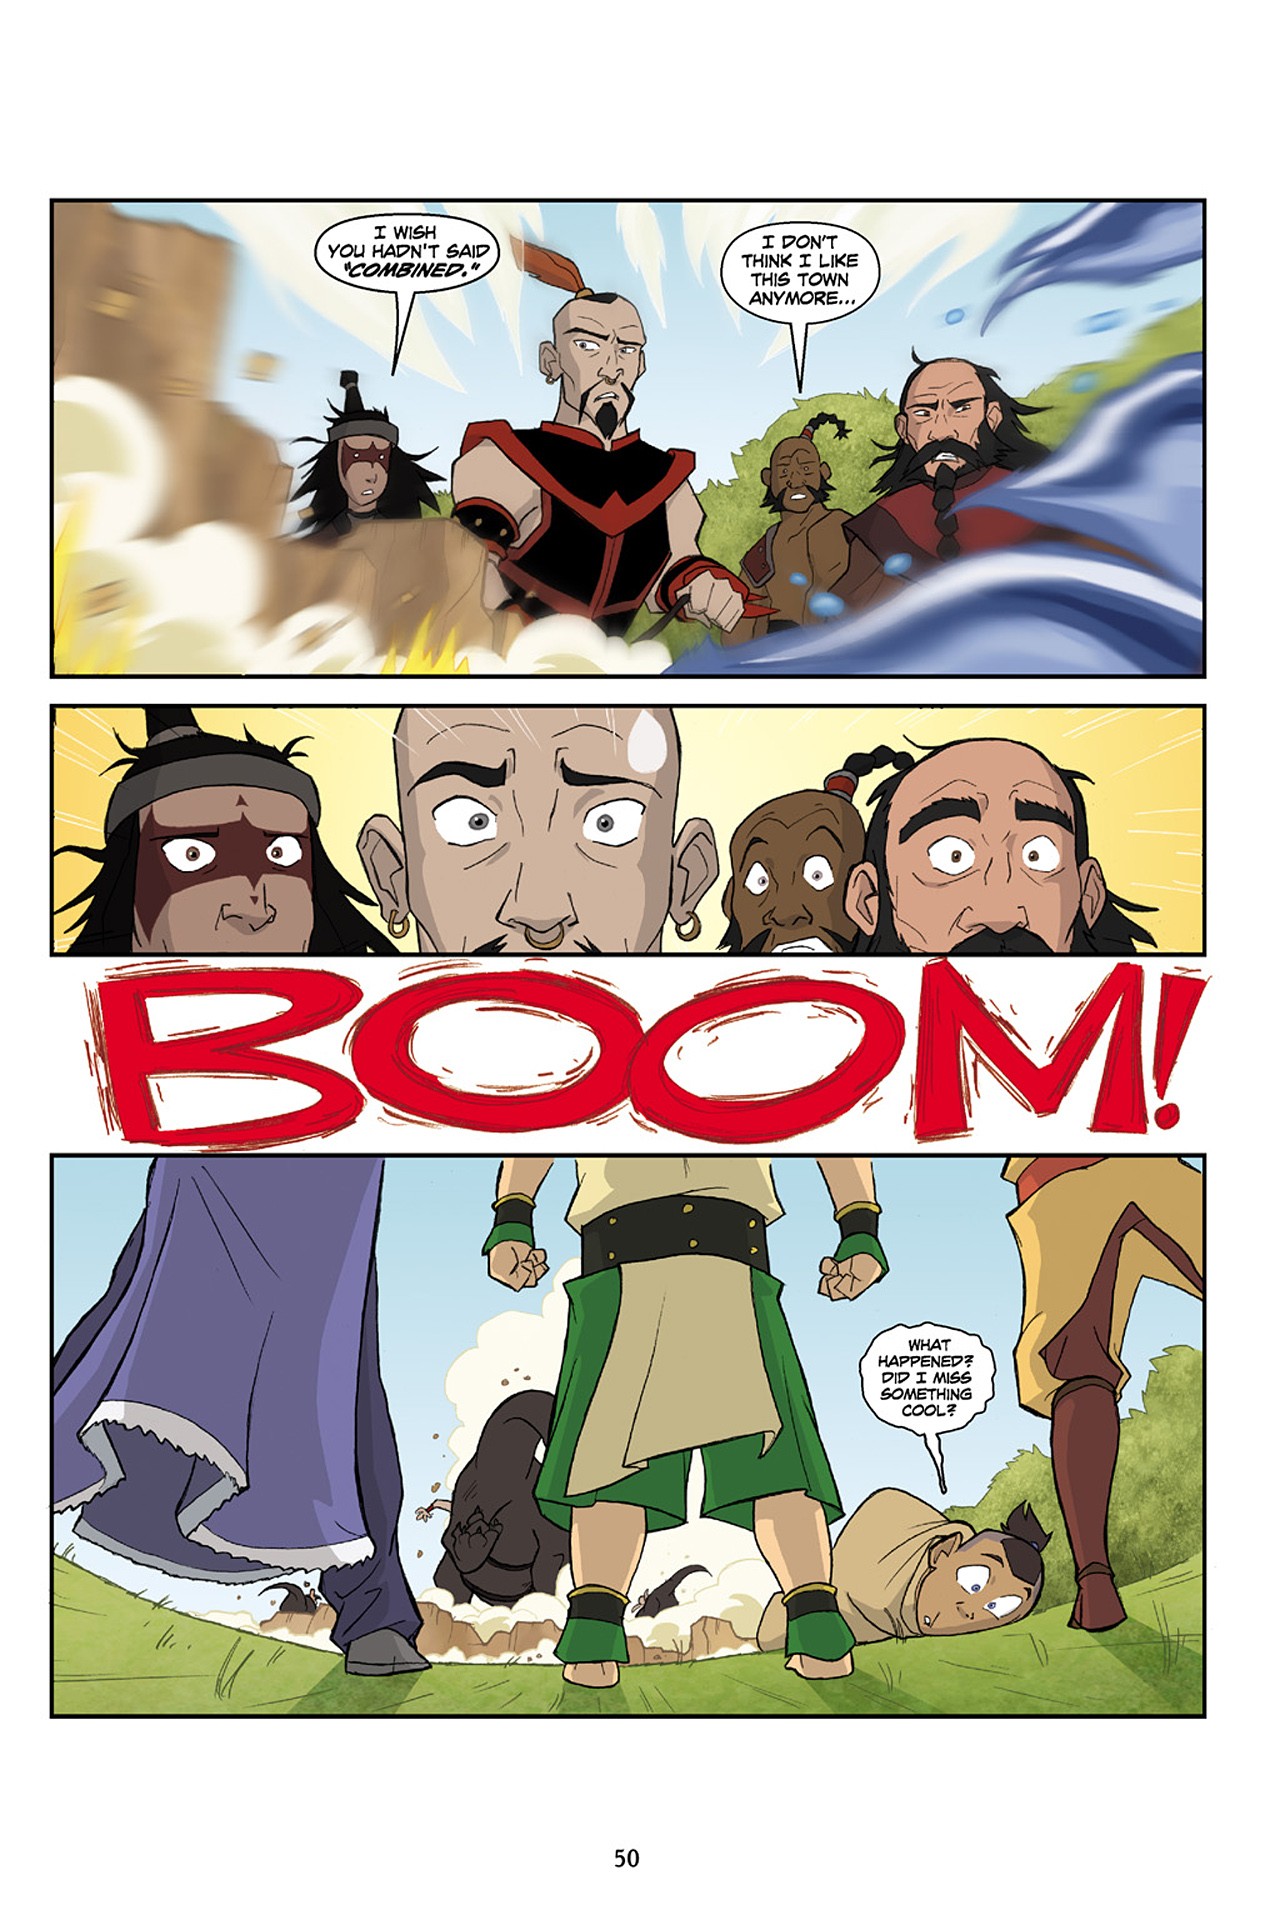 Nickelodeon Avatar: The Last Airbender - The Lost Adventures chap full pic 51